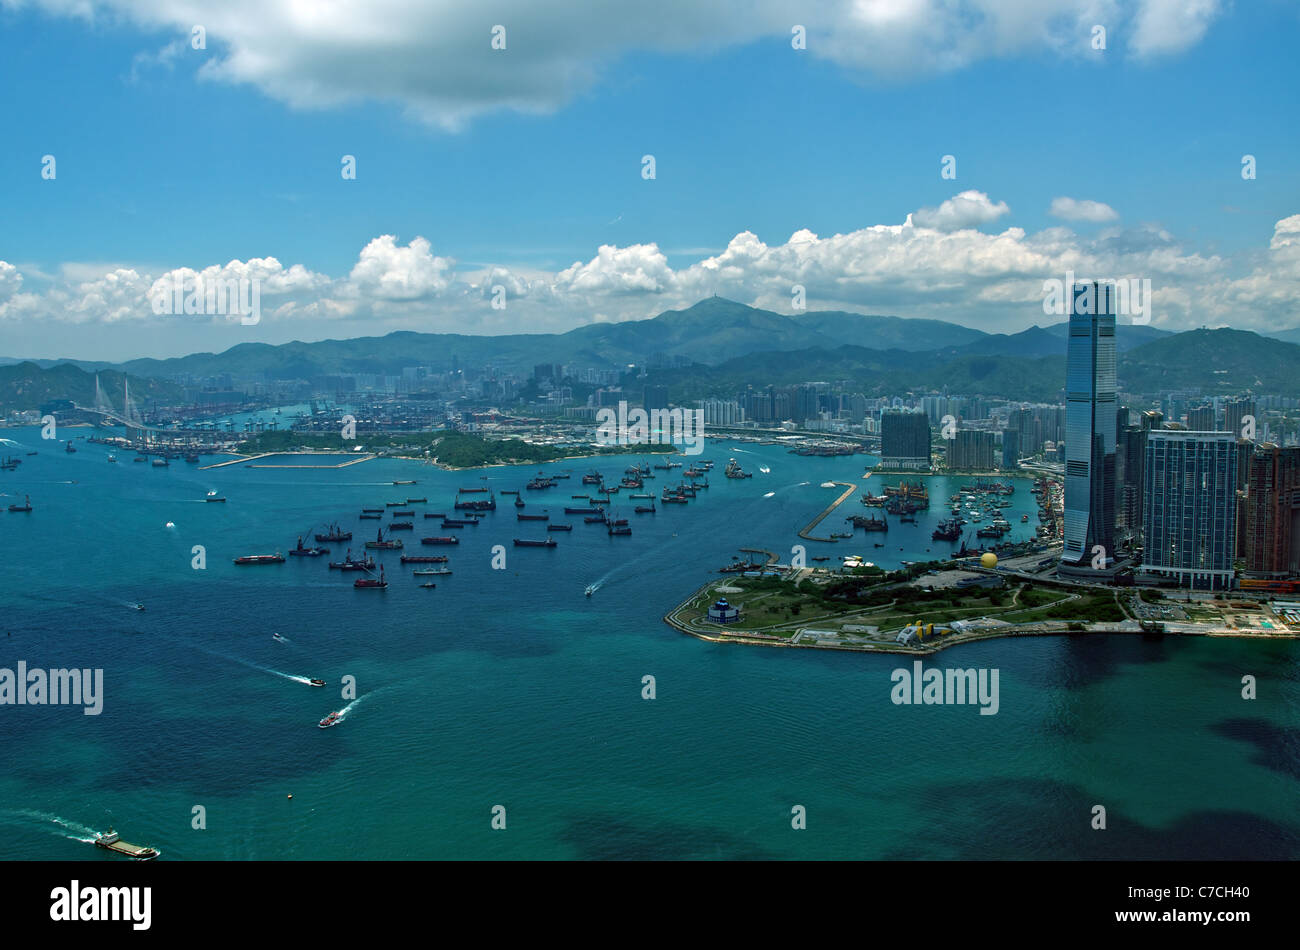 View of West Kowloon, and the International Commerce Centre (ICC), including the port area and Stonecutters Bridge. - Stock Image